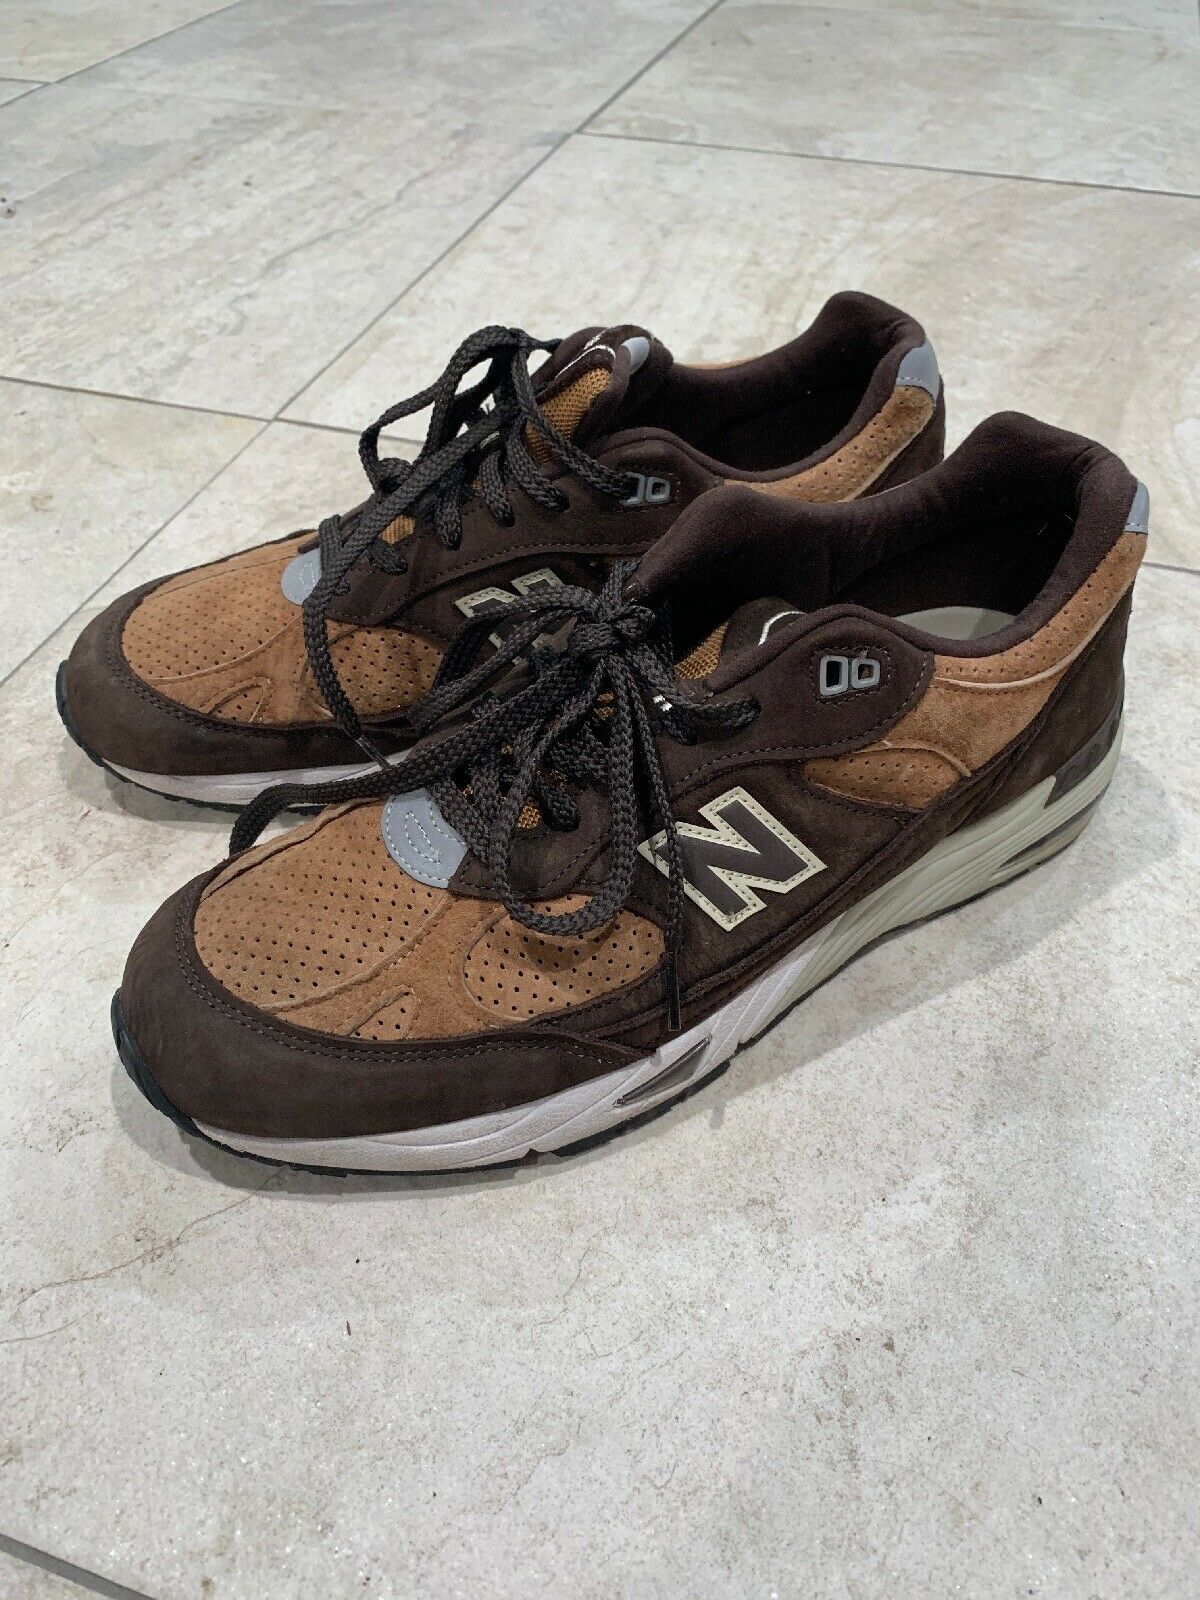 New Balance M991DBT Made In England sz 12 Pre-owned Running